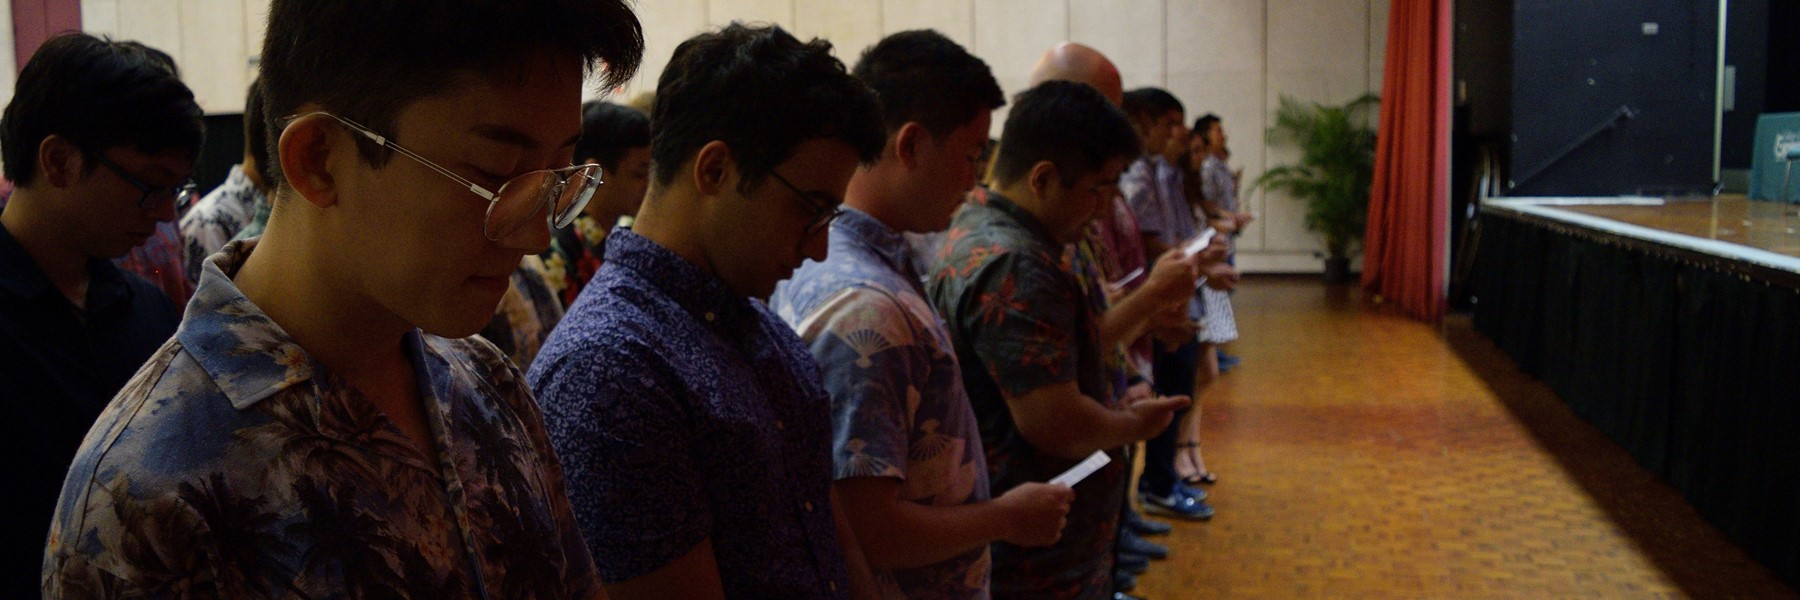 Students Taking The Obligation Of An Engineer Oath.